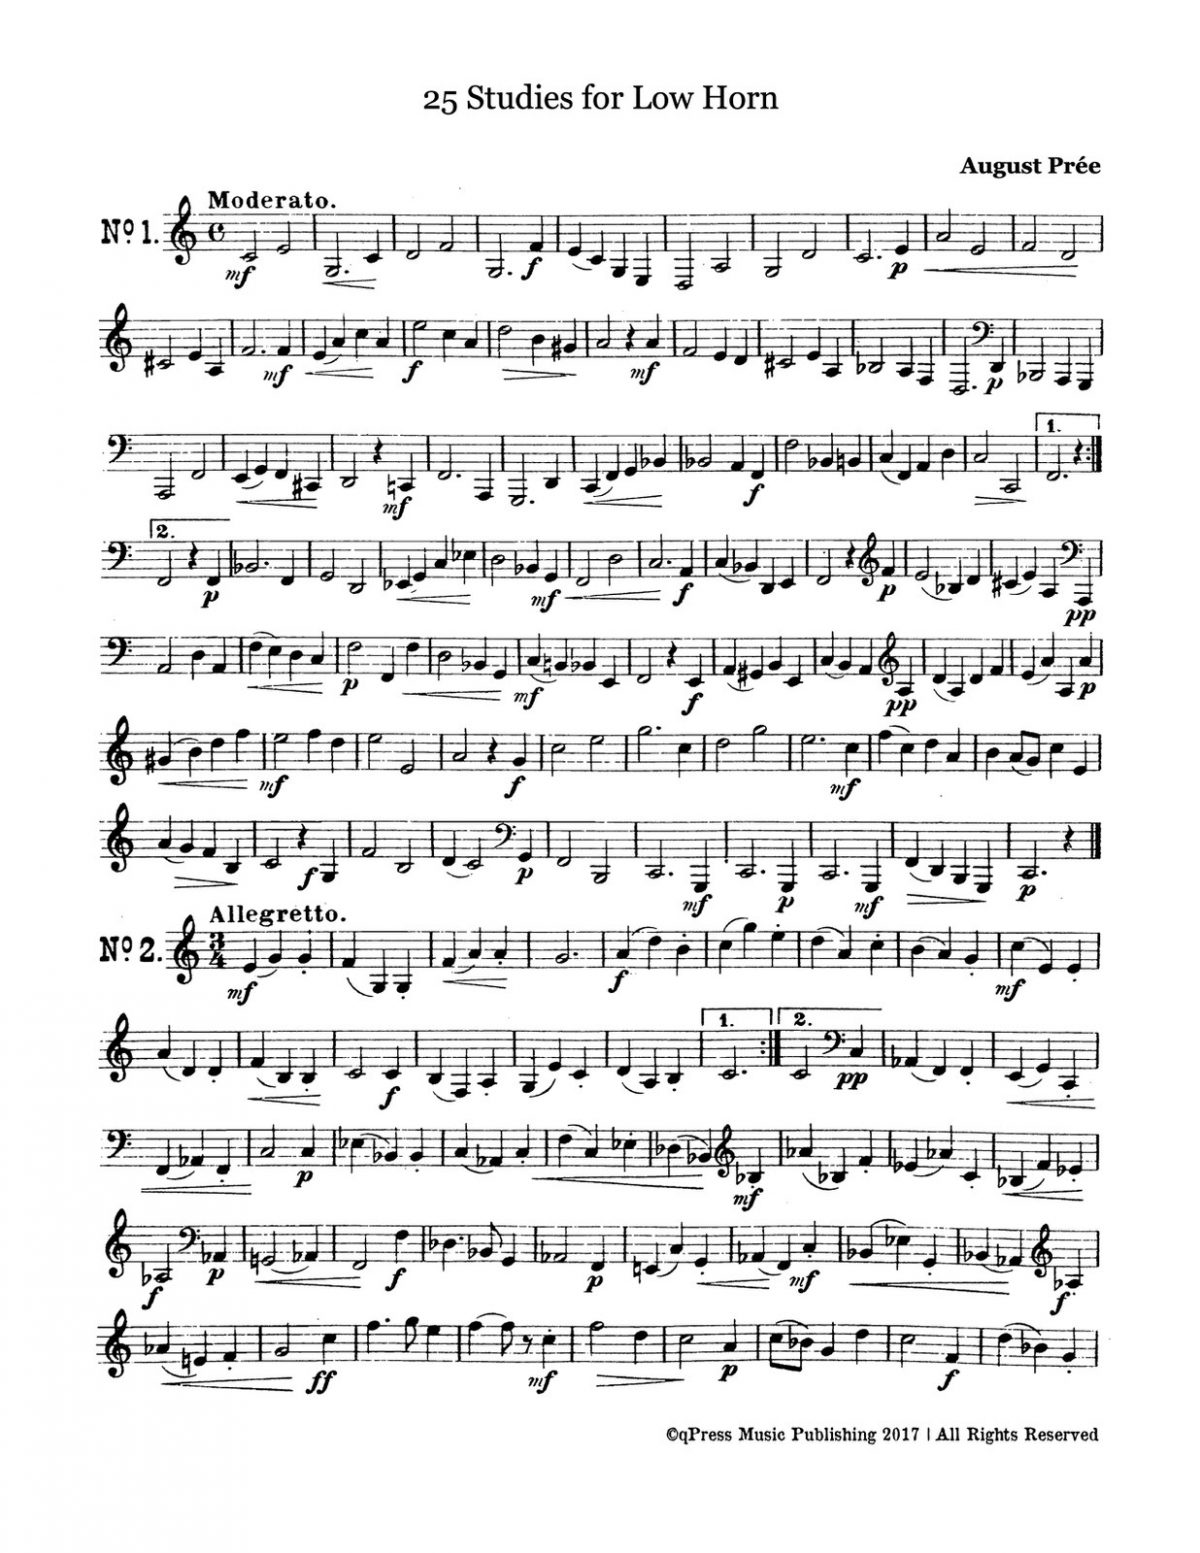 Prée, 25 Studies for Low Horn-p04